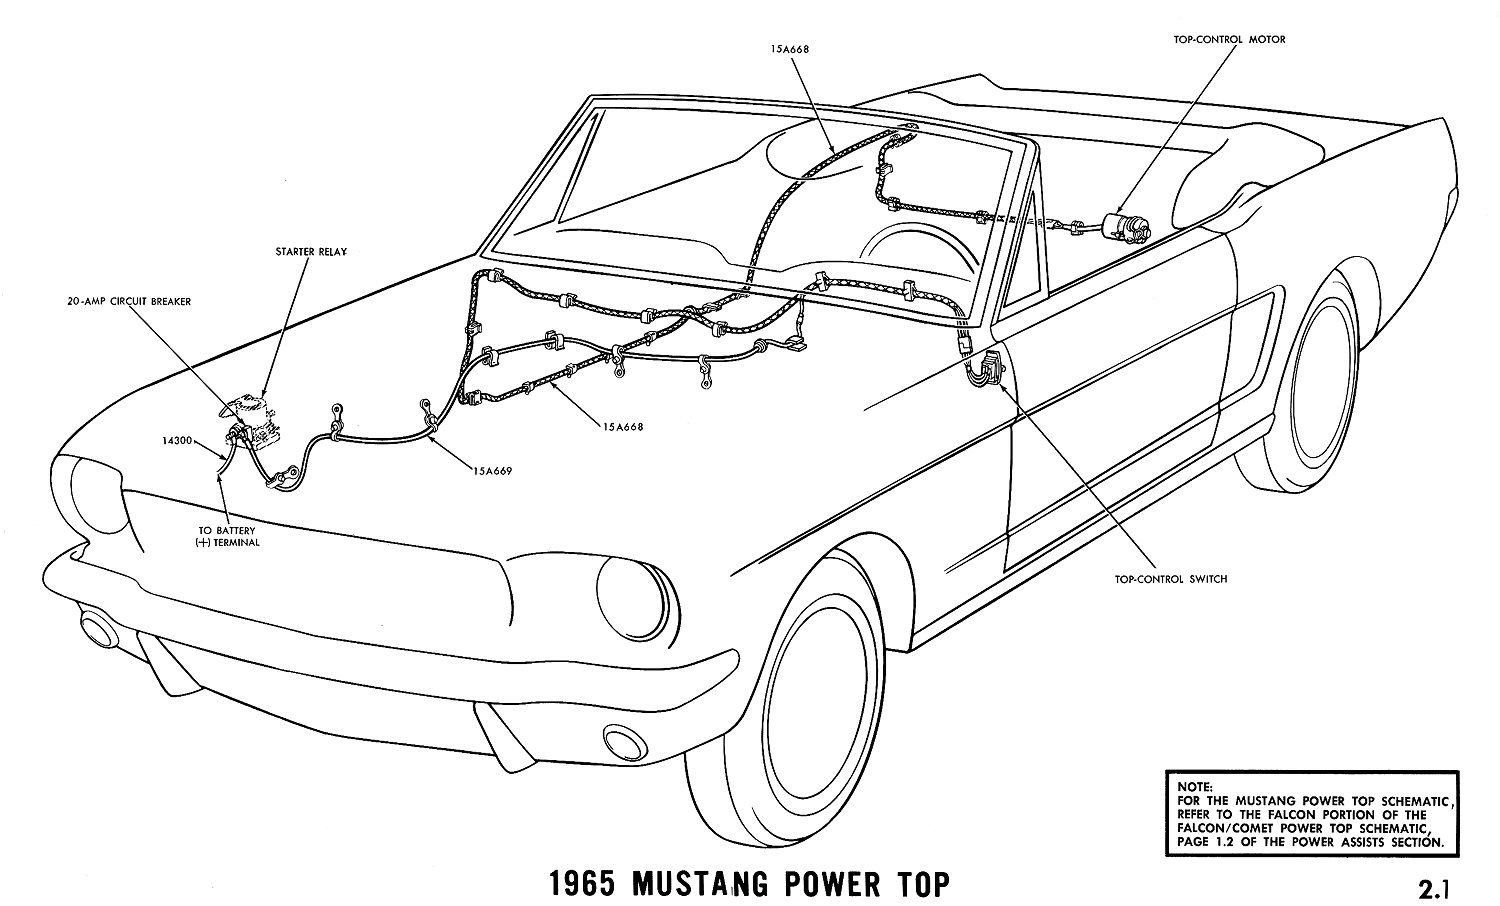 Mustang Headlight Wiring Diagram on 99 mustang headlight wiring diagram, 98 mustang headlight wiring diagram, 91 mustang gauge diagram, 91 mustang fuse diagram, 89 mustang headlight wiring diagram, 01 mustang headlight wiring diagram, 95 mustang headlight wiring diagram, 92 mustang headlight wiring diagram, 88 mustang headlight wiring diagram,